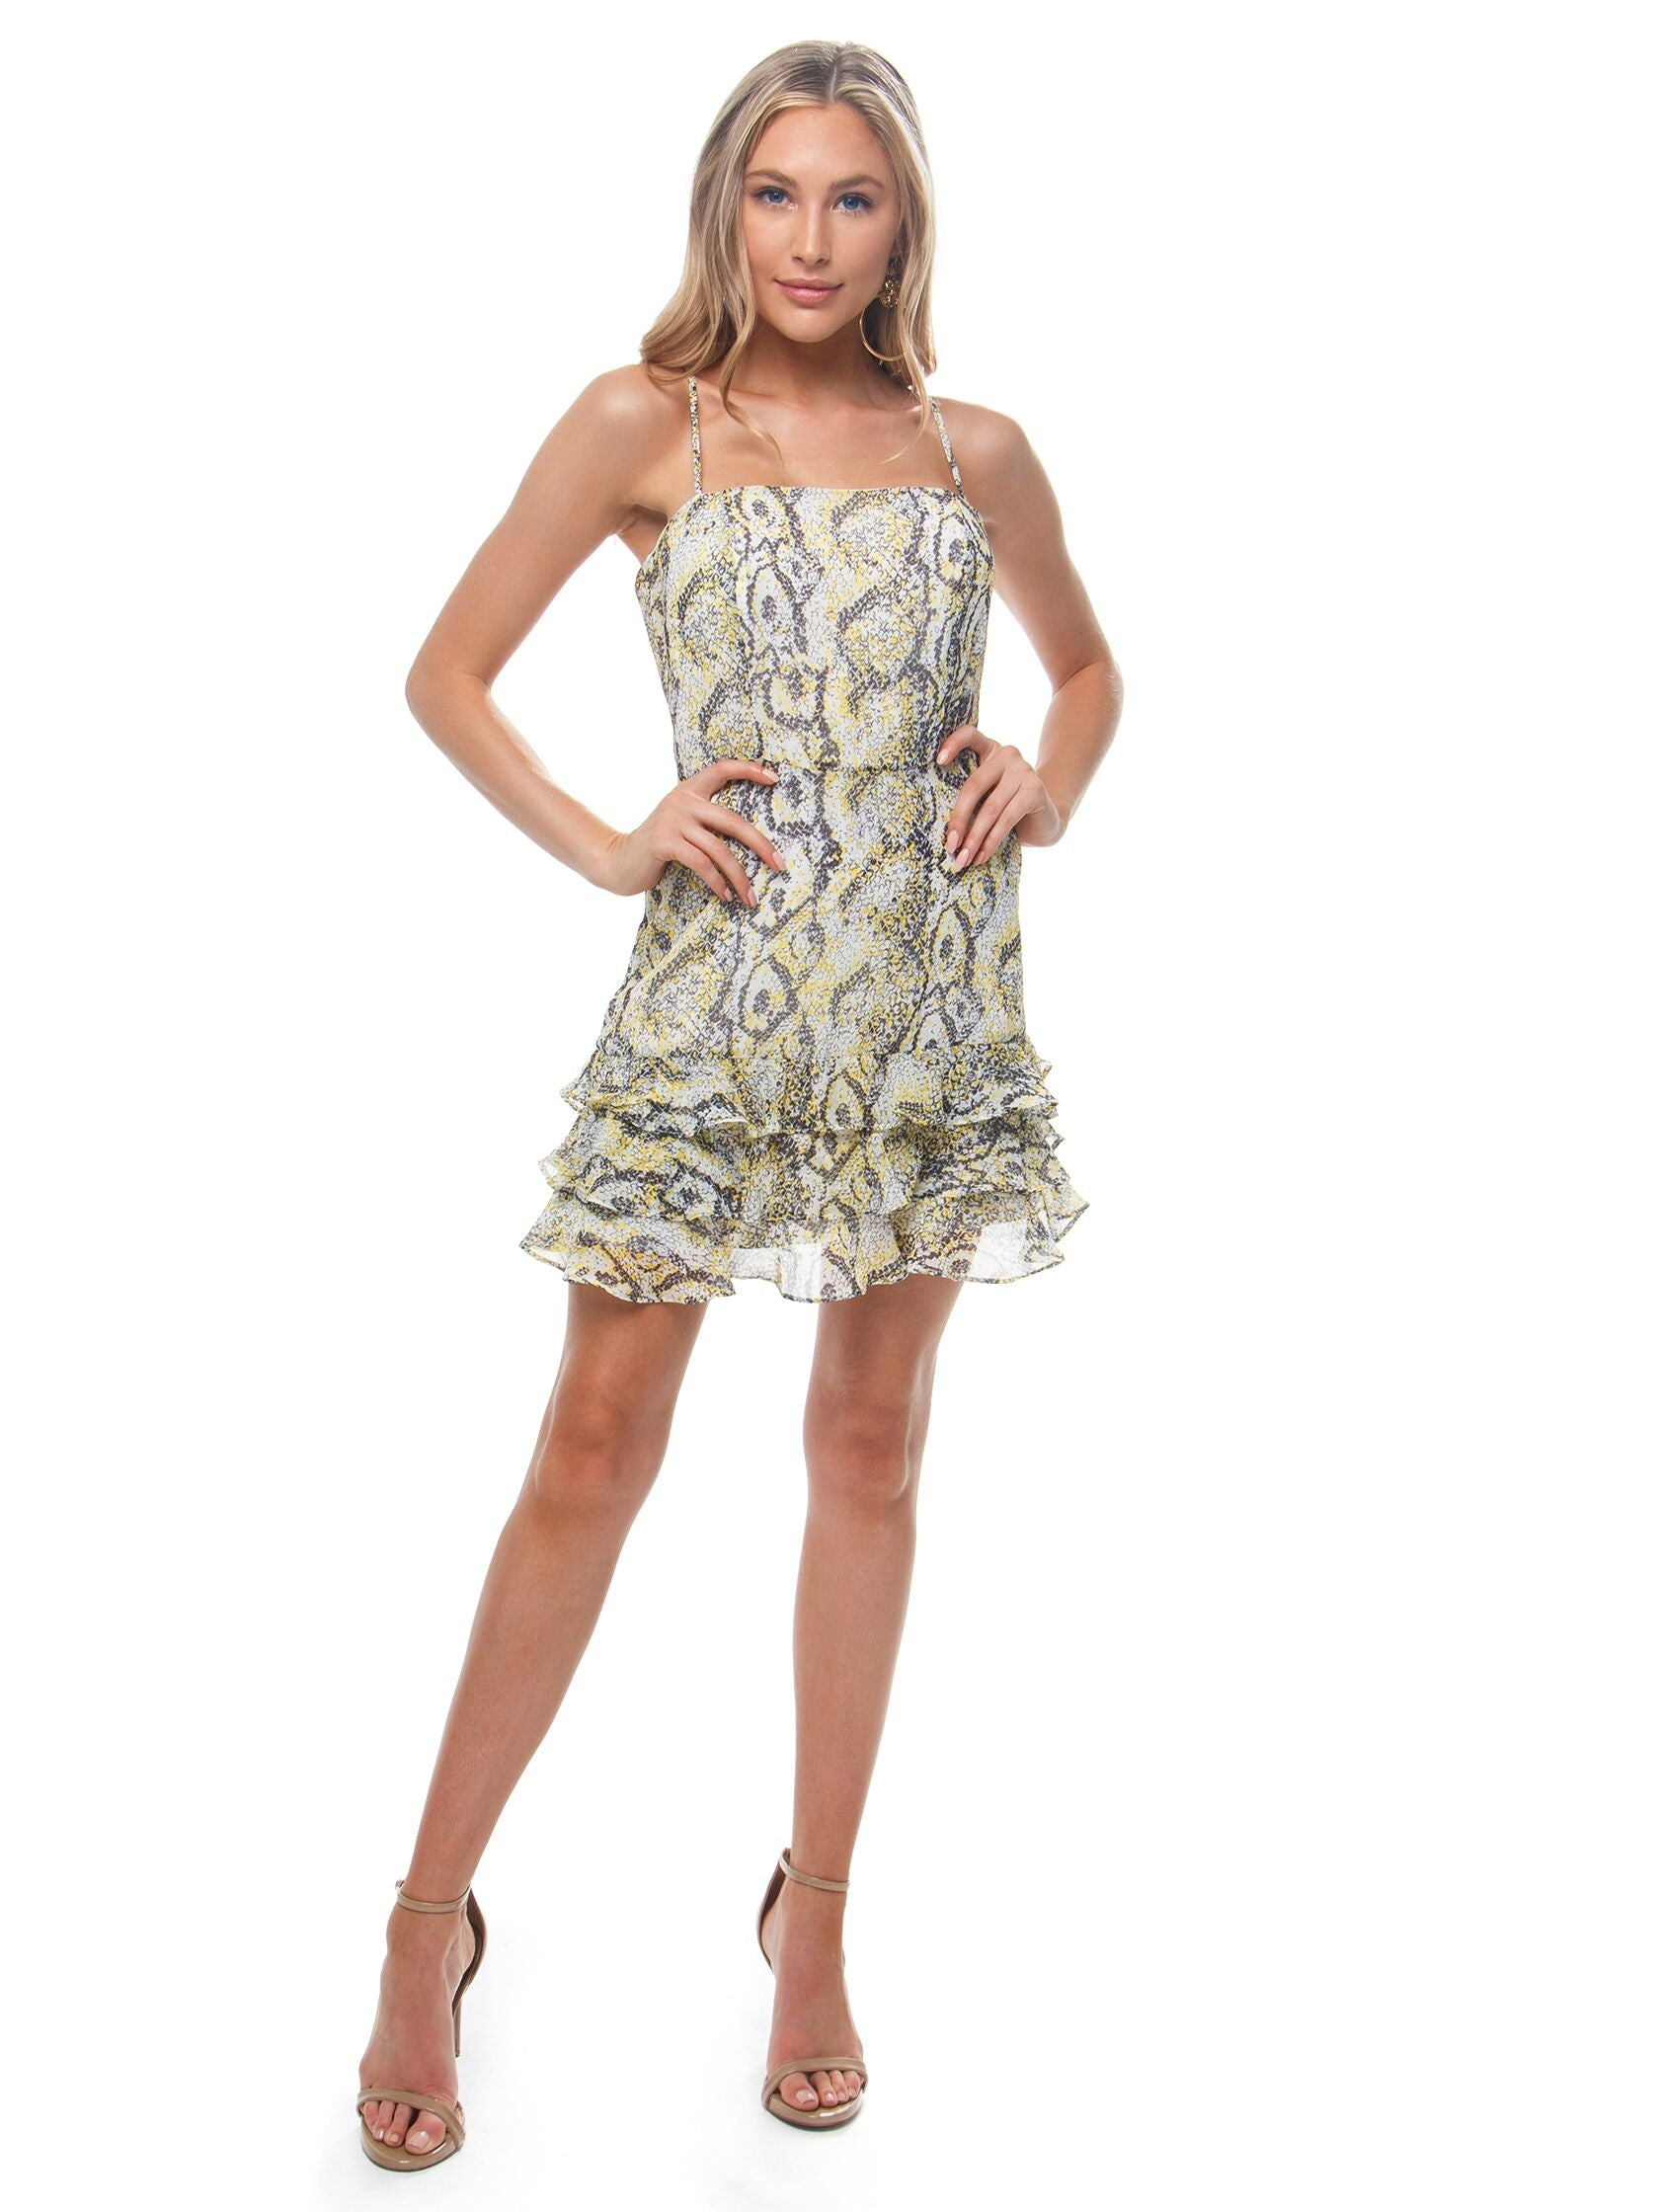 Women outfit in a dress rental from BARDOT called Madison Frill Dress